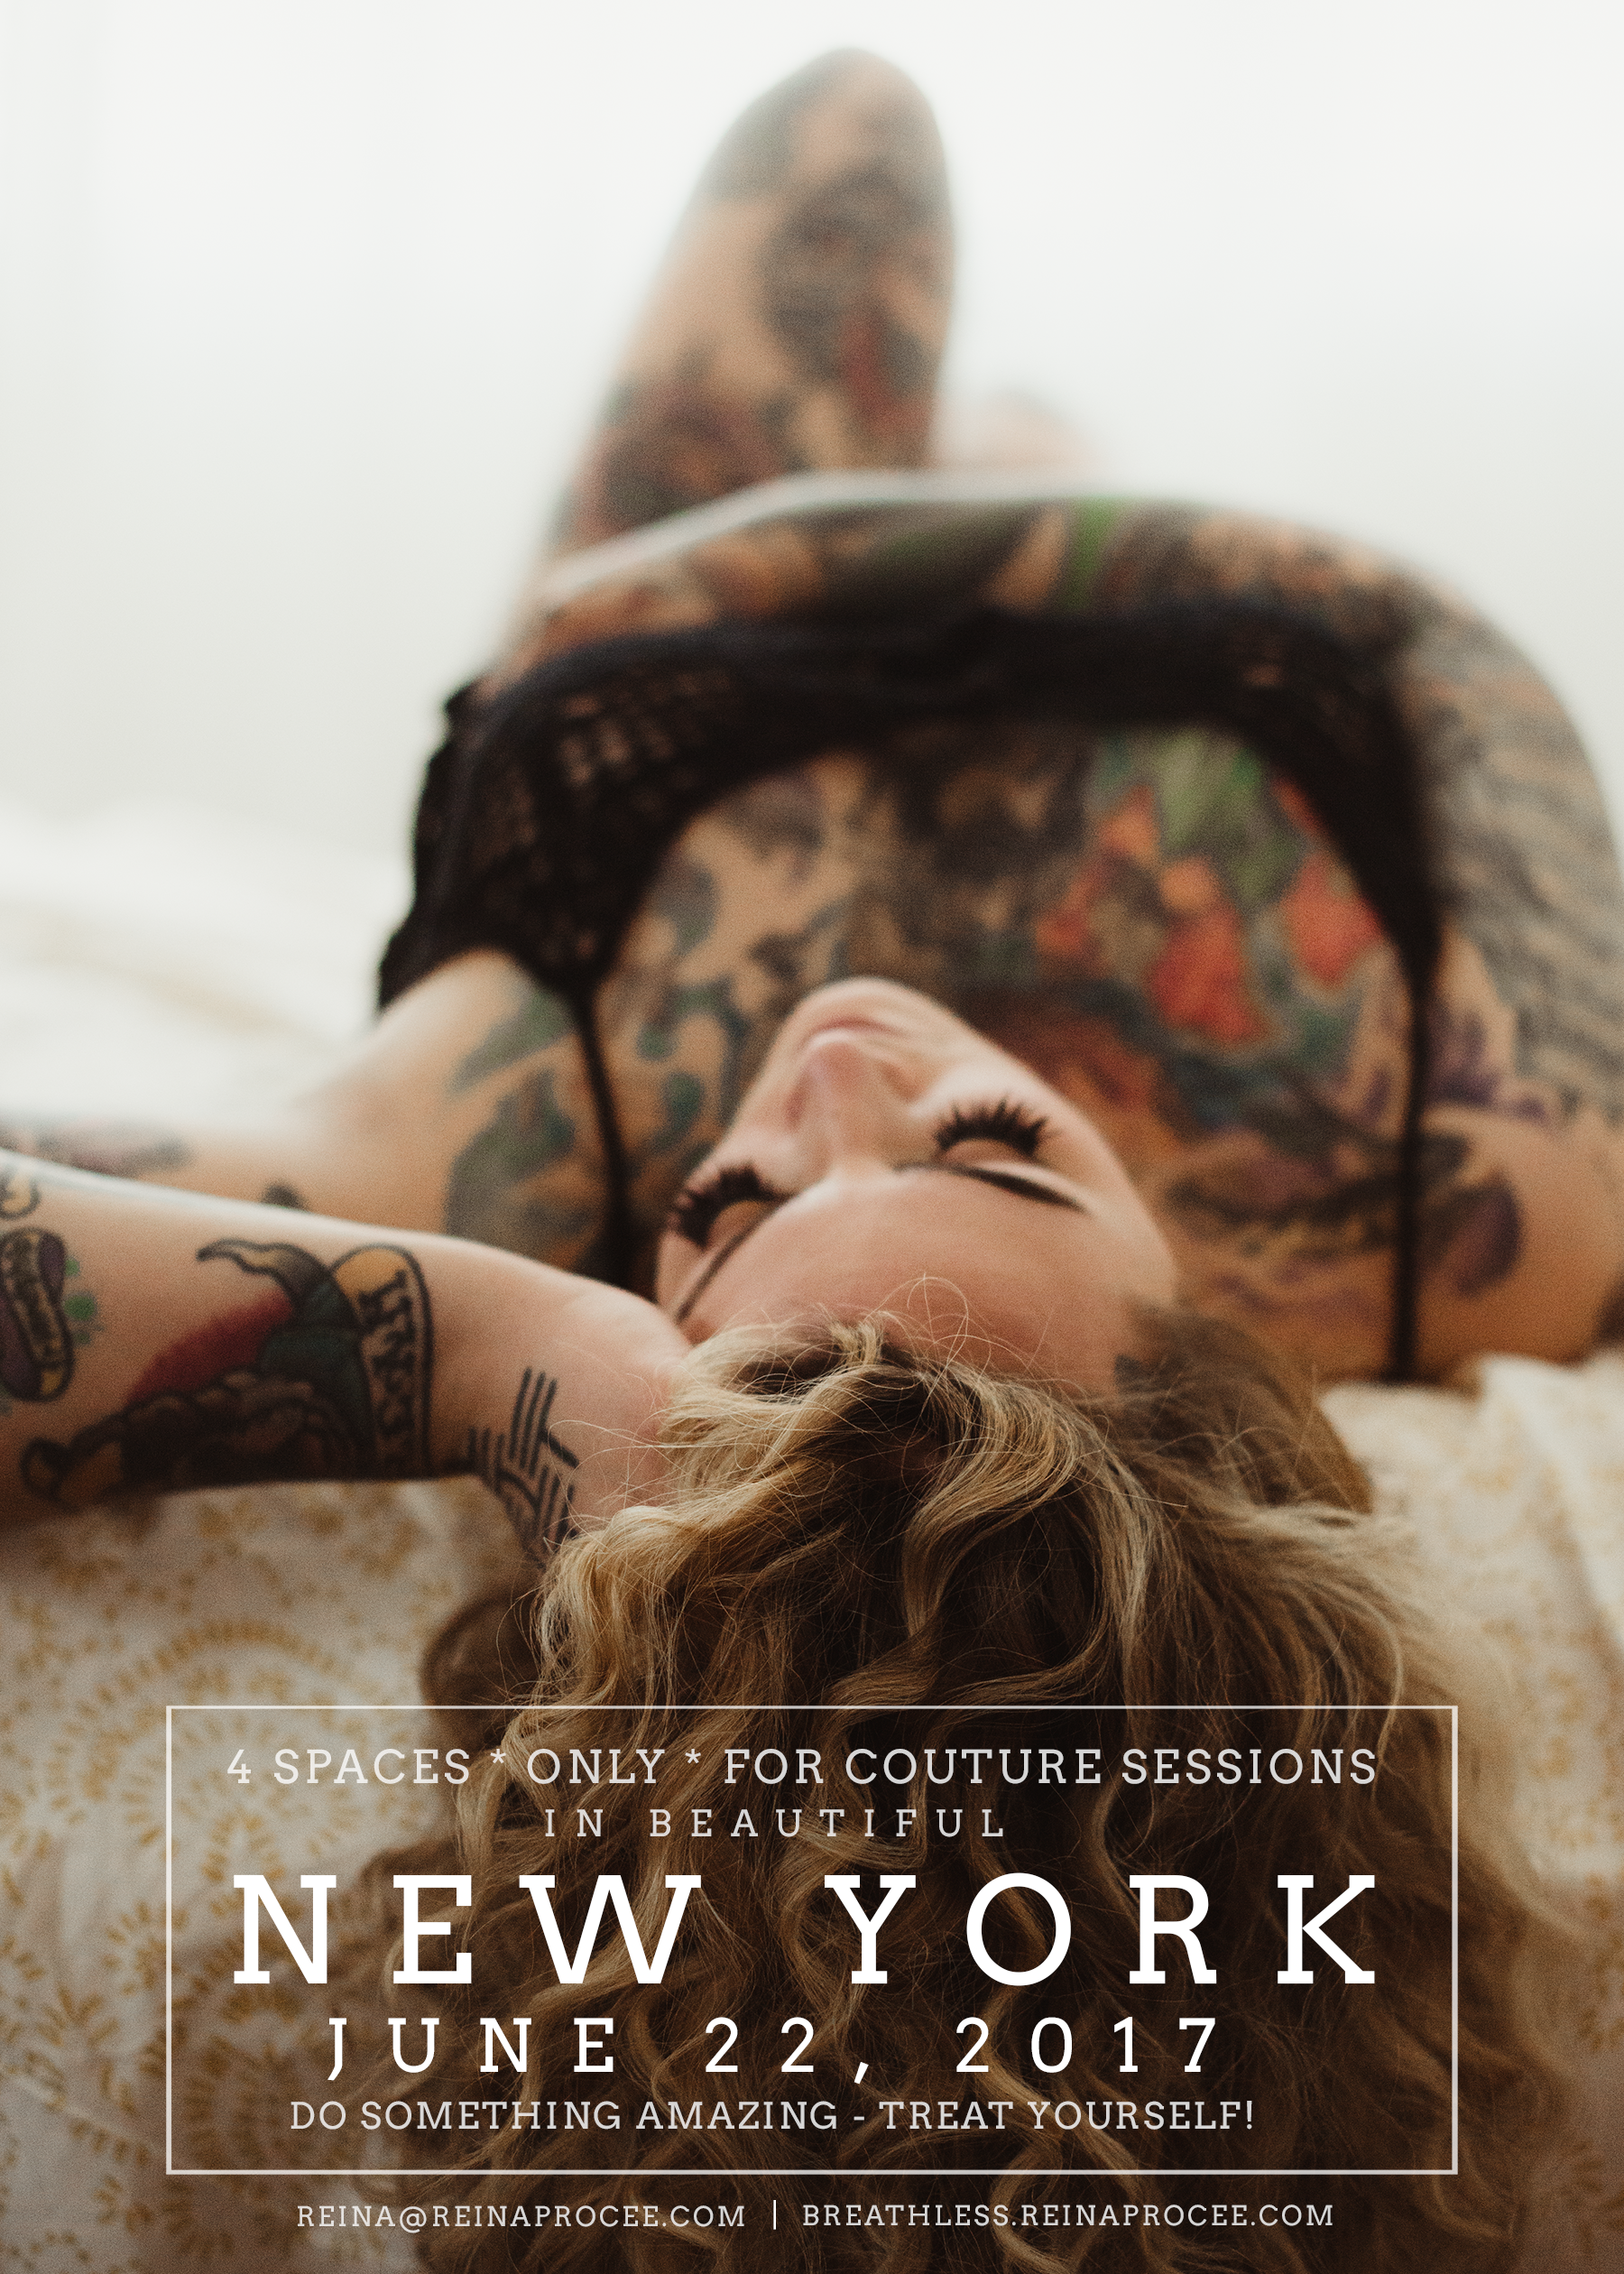 Toronto Love Sessions - Embrace the heat of the hottest month of the summer - feel amazing, gorgeous and powerful. Whether you are celebrating your love for your lover, or your love for yourself, these sessions are the best way!Come by yourself or bring your partner for a couple's boudoir session - trust me, it's going to be a BLAST!Your session fee is $100 and due at booking to hold your time and includes a one hour session with me in a gorgeous location in Toronto!Products are sold separately, Digital Packages start at $195.There is no minimum order amount, I want you to buy the images you LOVE! I guarantee you will love them all!Click here to contact me for my full price list!